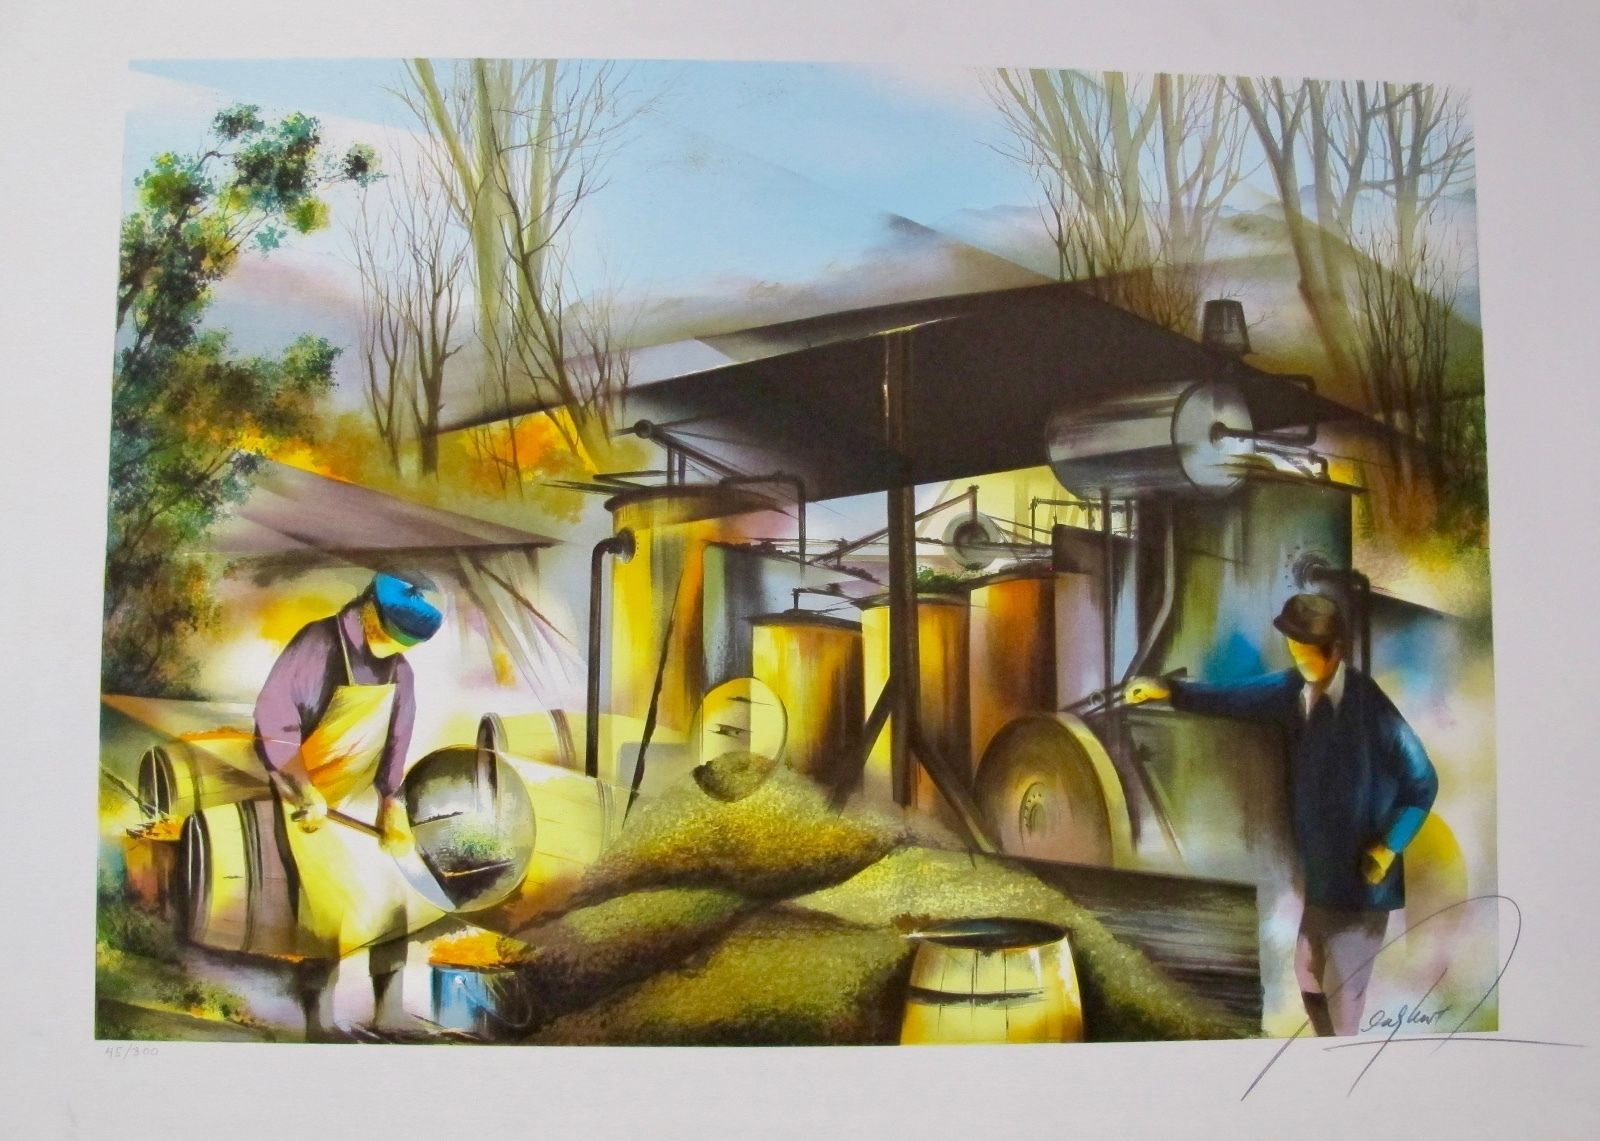 RAYMOND POULET GLASS BLOWER Hand Signed Limited Edition Lithograph